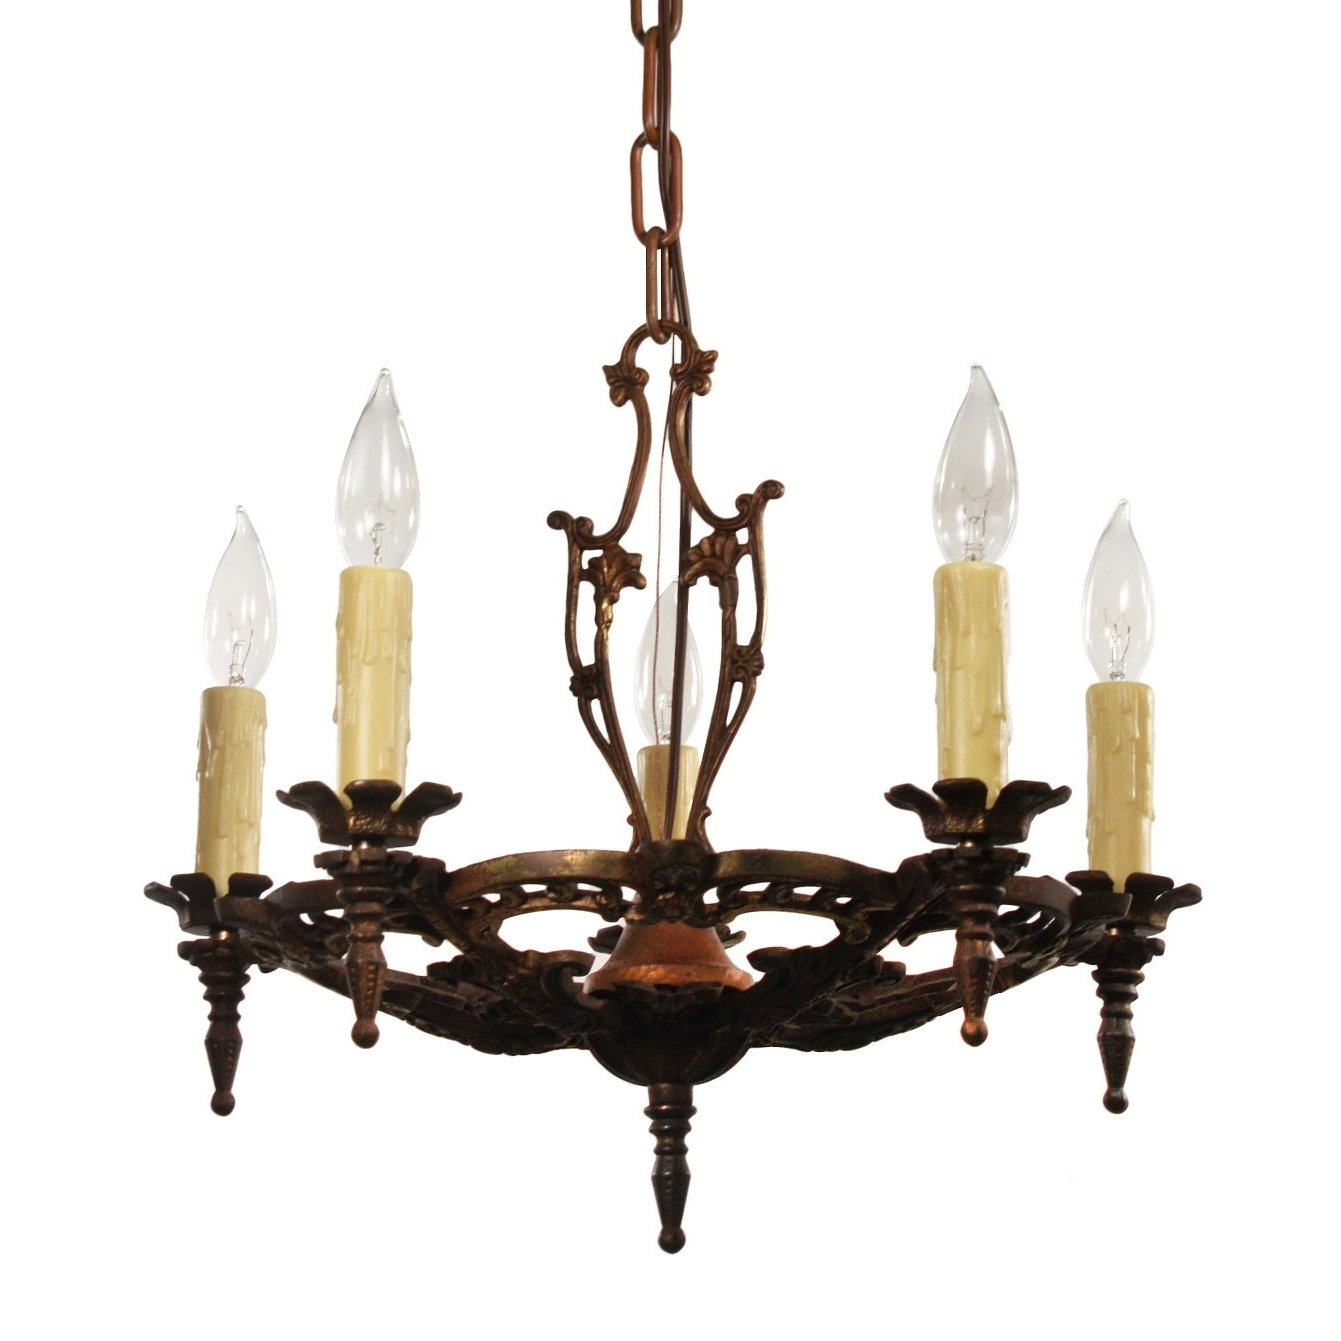 Cast Iron Antique Chandelier Within Best And Newest Antique Chandelier In Cast Iron, Antique Lighting – Preservation (View 6 of 15)